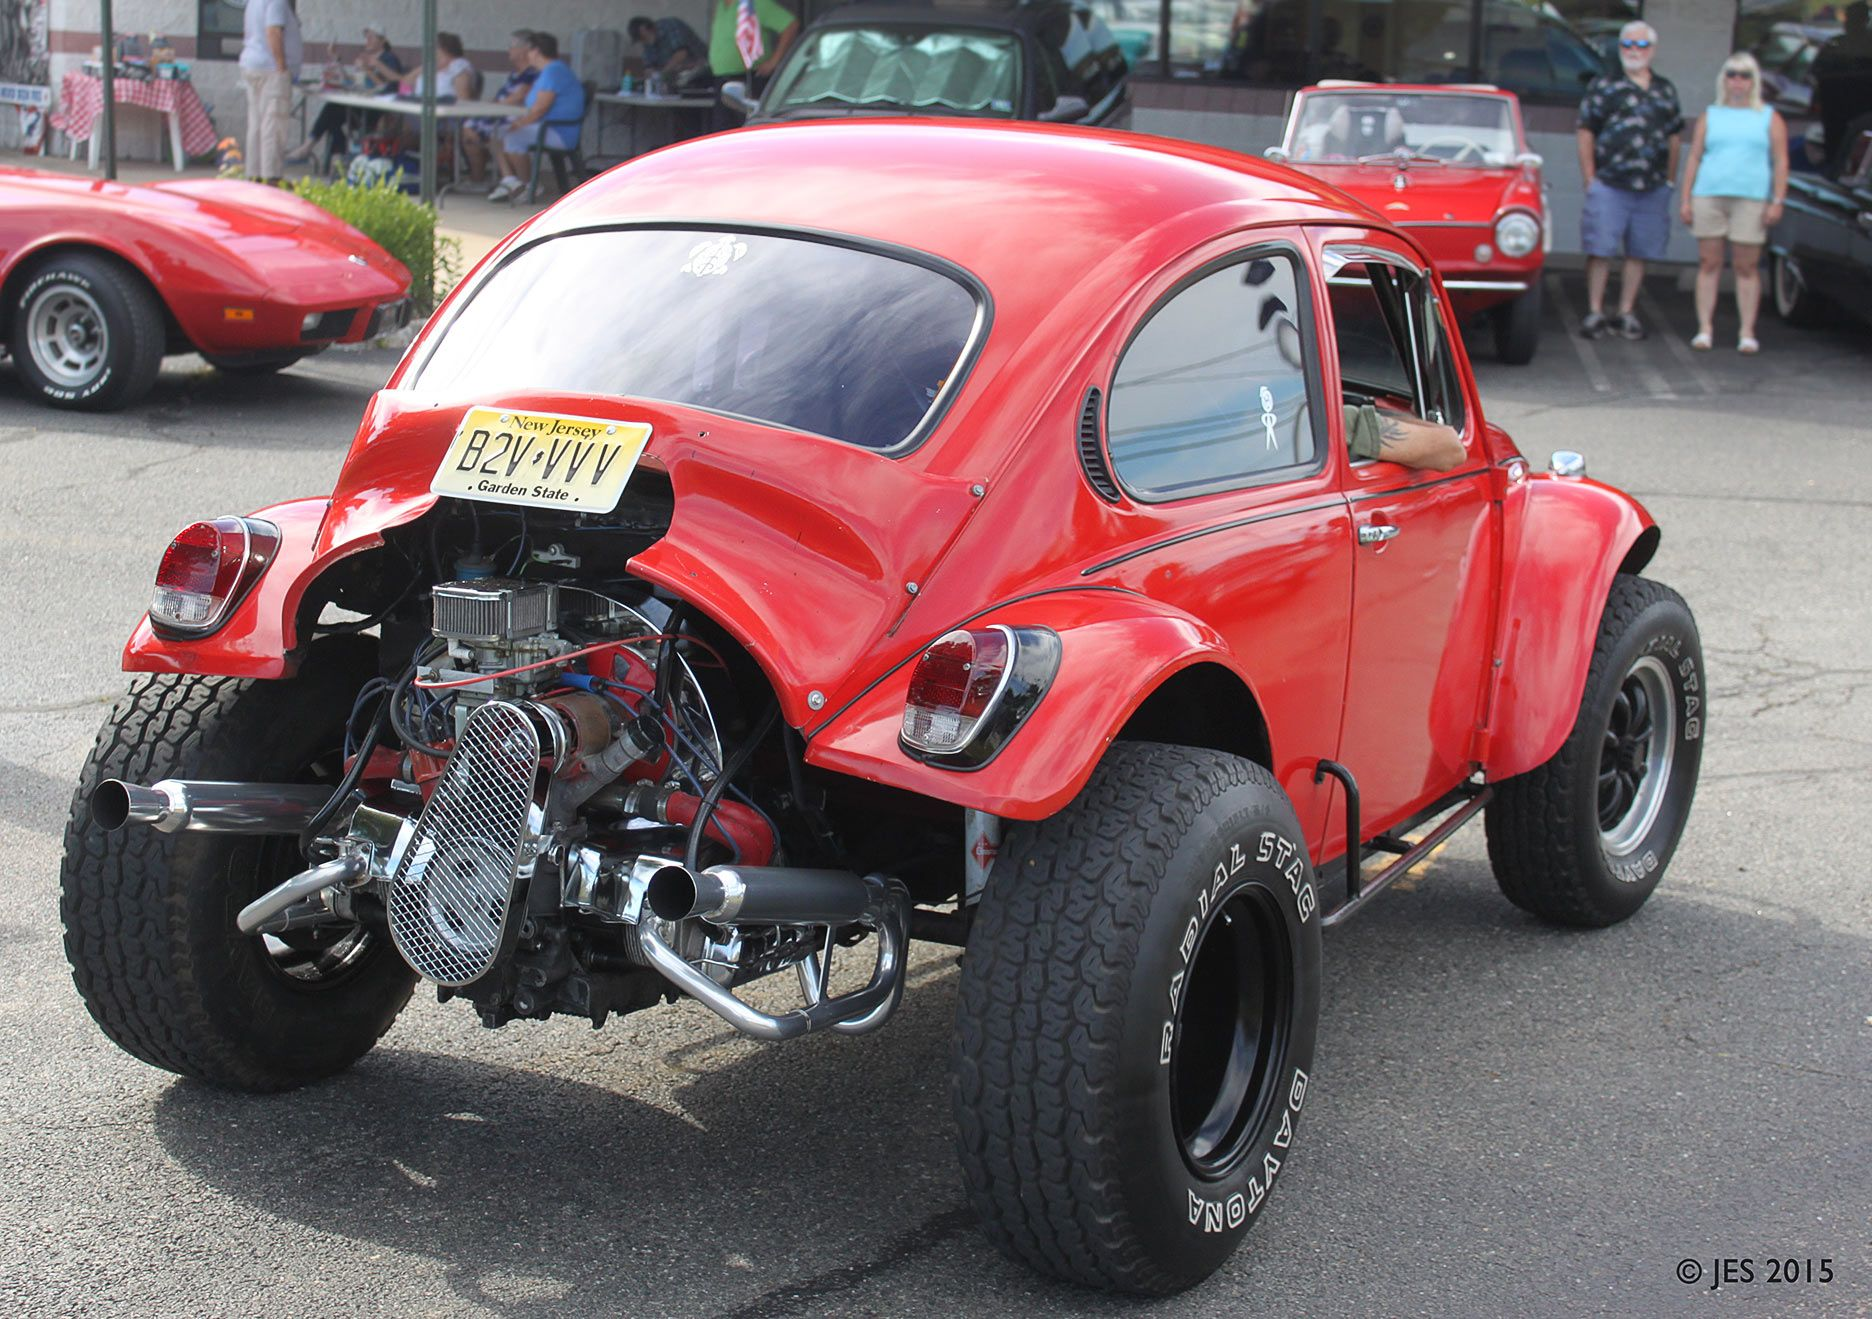 VW Beetle Dune Buggy OC 1872x1319 Car Porn Pinterest